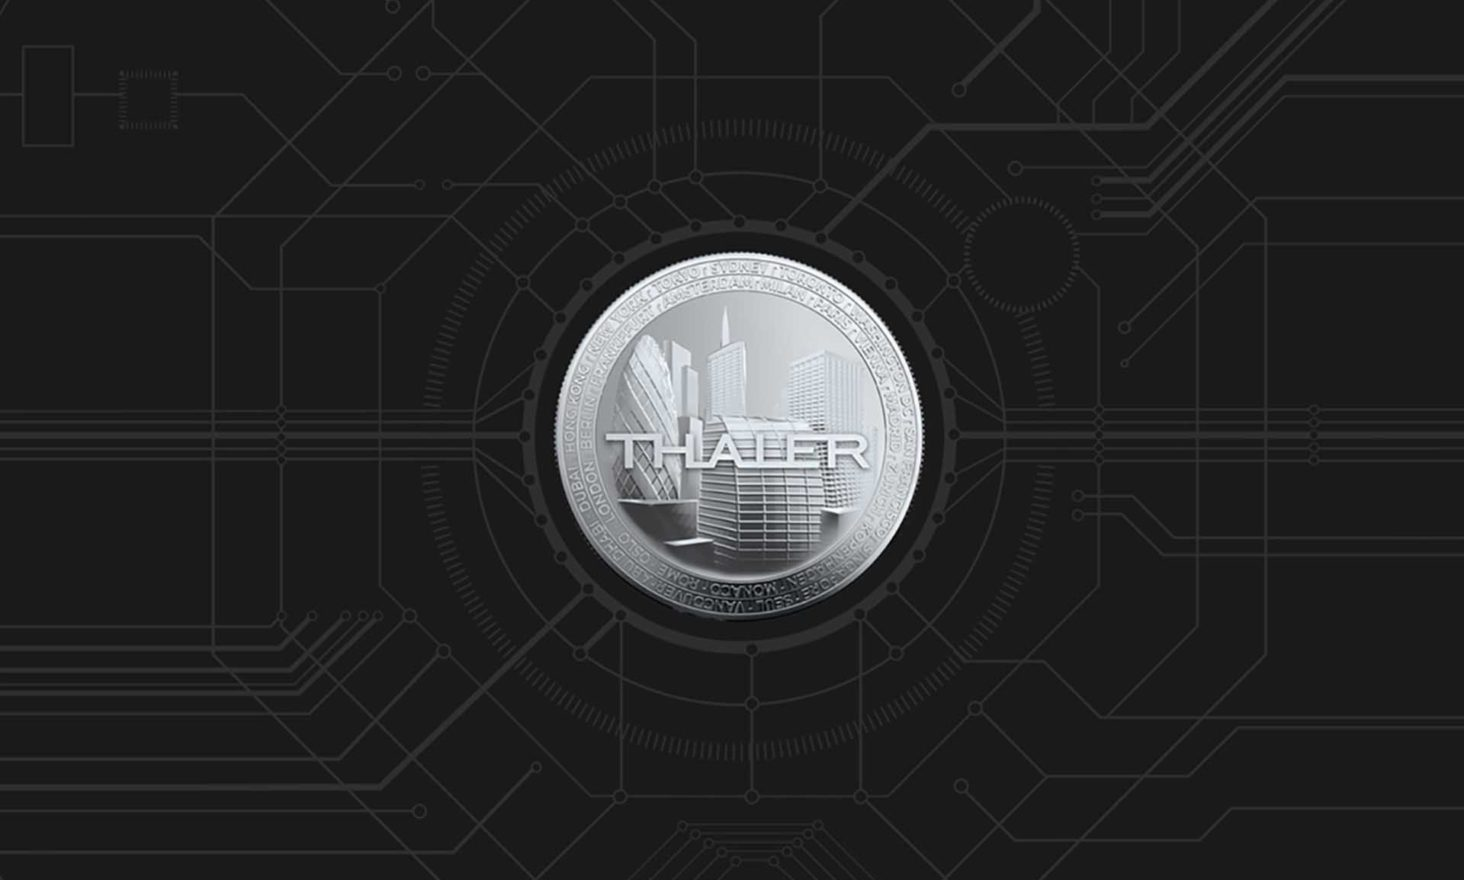 Thaler.One, Blockchain-Based Investment Fund, to Change How Tokens Work with New $5bln Real Estate Investment Platform